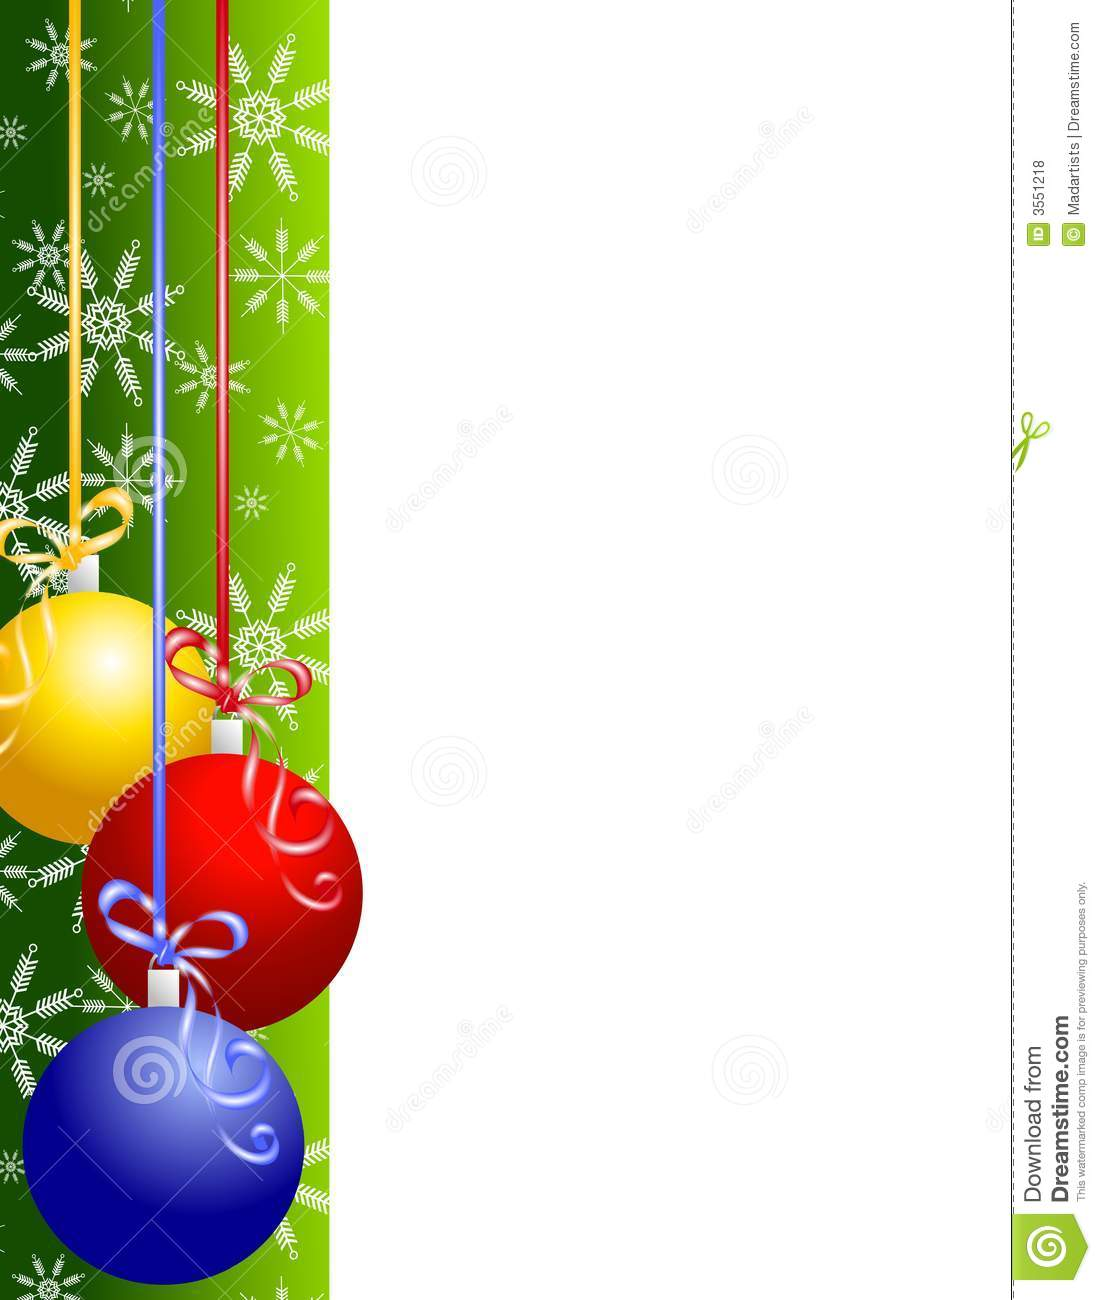 graphic regarding Free Christmas Clipart Borders Printable named Totally free Non secular Xmas Clipart at  Free of charge